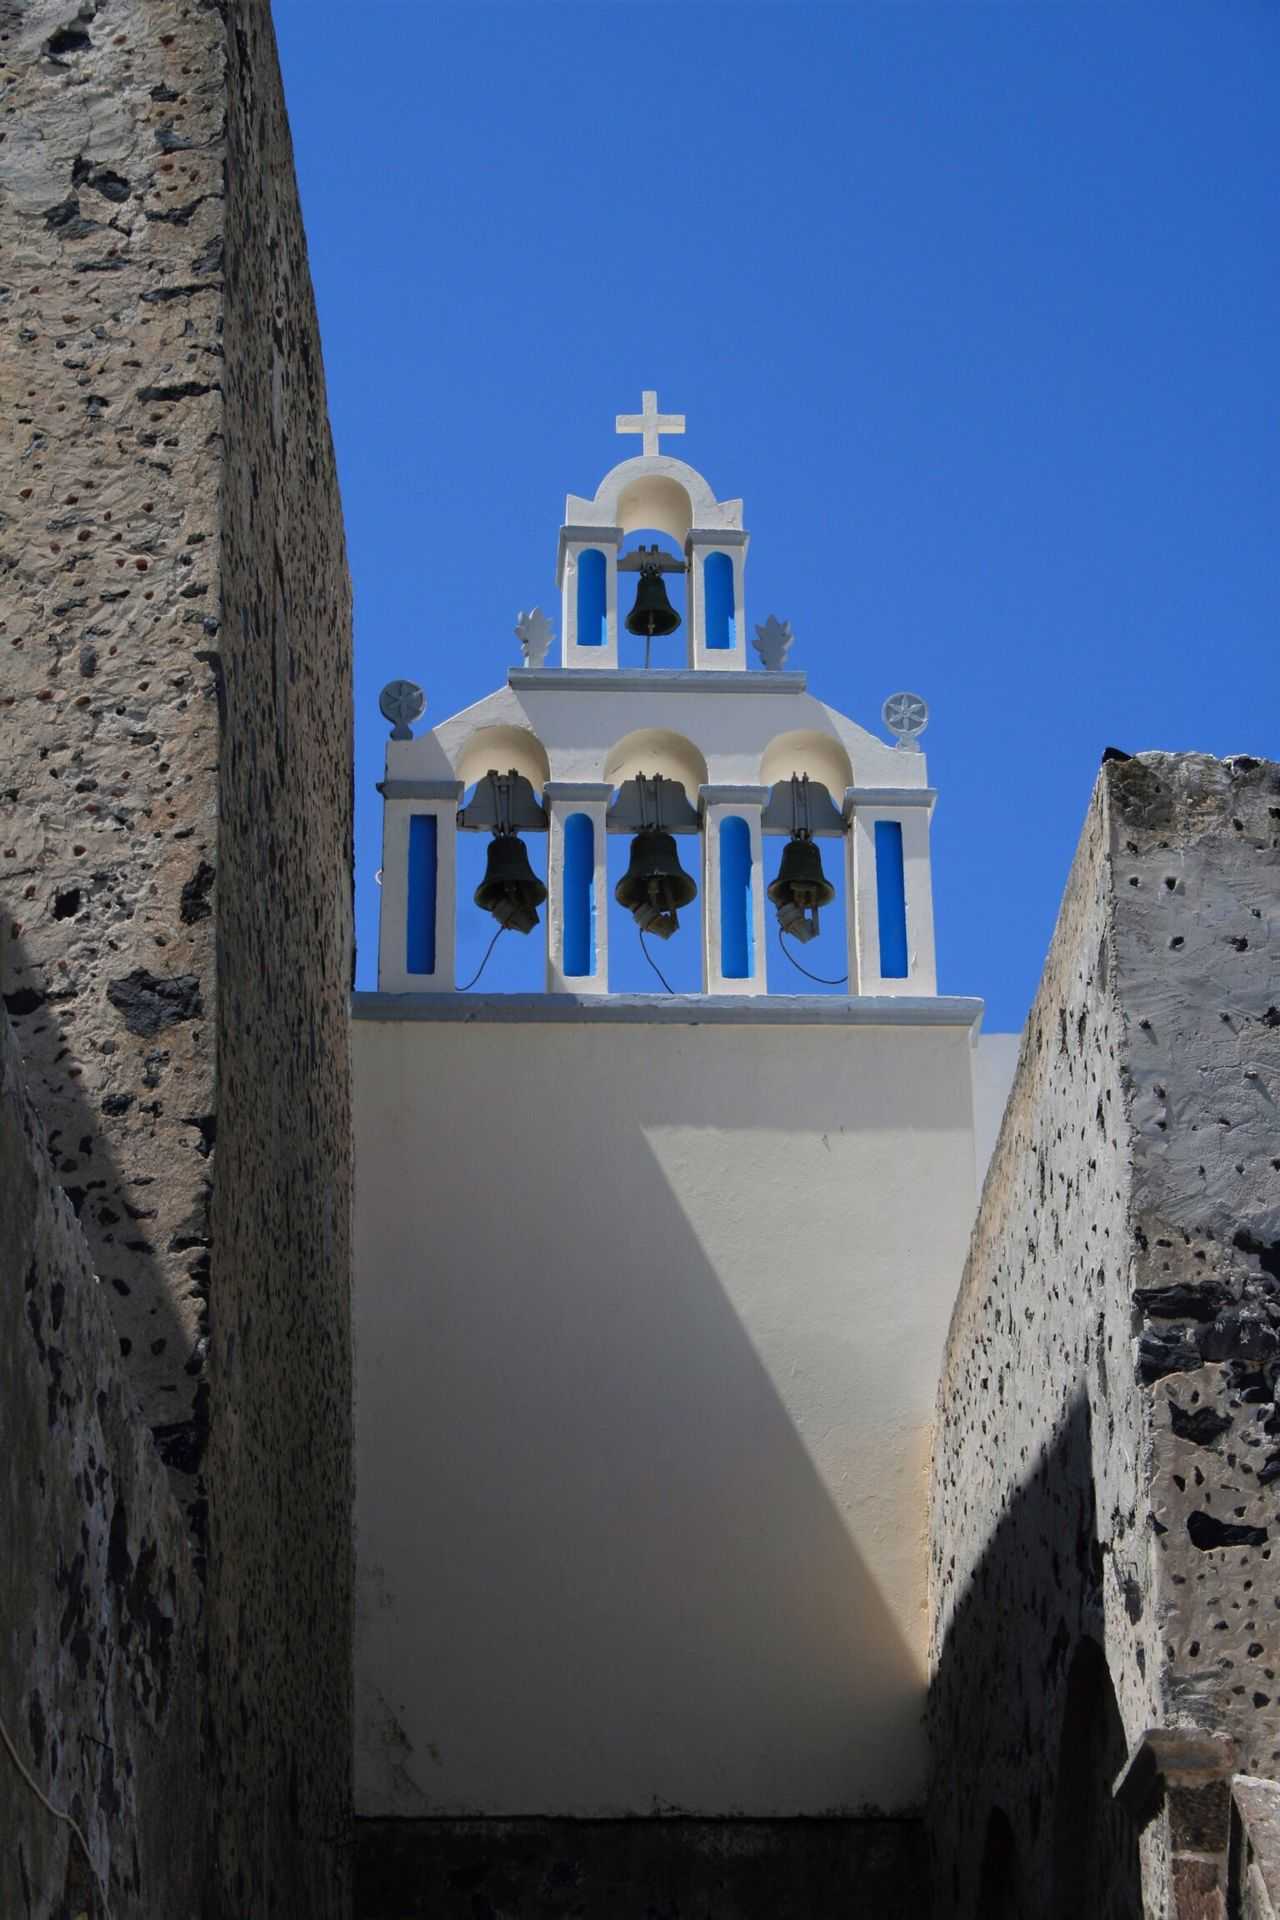 Churches of Santorini 🇬🇷 07 Religion Place Of Worship Architecture Built Structure Building Exterior Spirituality Blue Clear Sky Sunlight Outdoors Low Angle View Cross Travel Destinations Day No People Sky Whitewashed Dome Bell Bell Tower Santorini, Greece Vacations Canonphotography Canon400d Spirituality